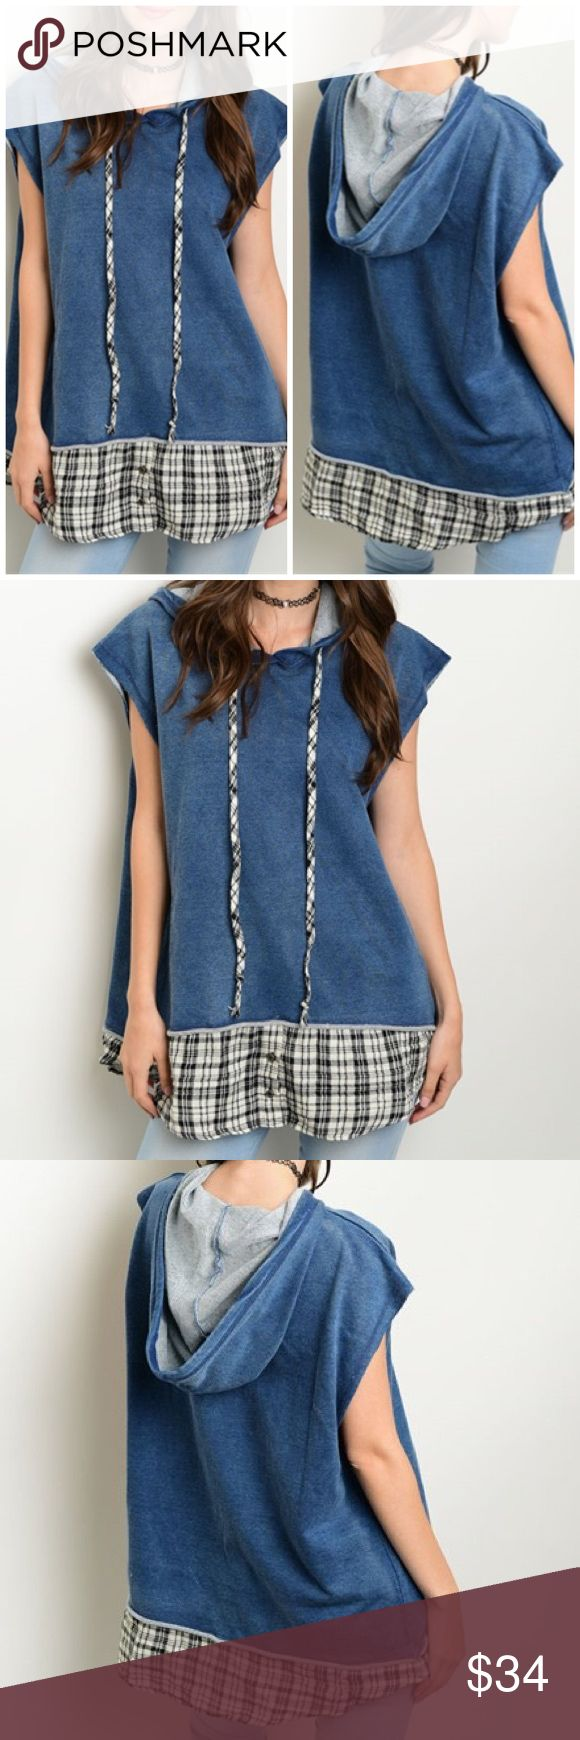 "Lightweight Slouchy Denim Top Denim oversized vest features plaid trim and drawstring detail. Made from 95% Cotton 5% Spandex.  Measures for small:  Length 31"" Bust: 46"" Bchic Tops"